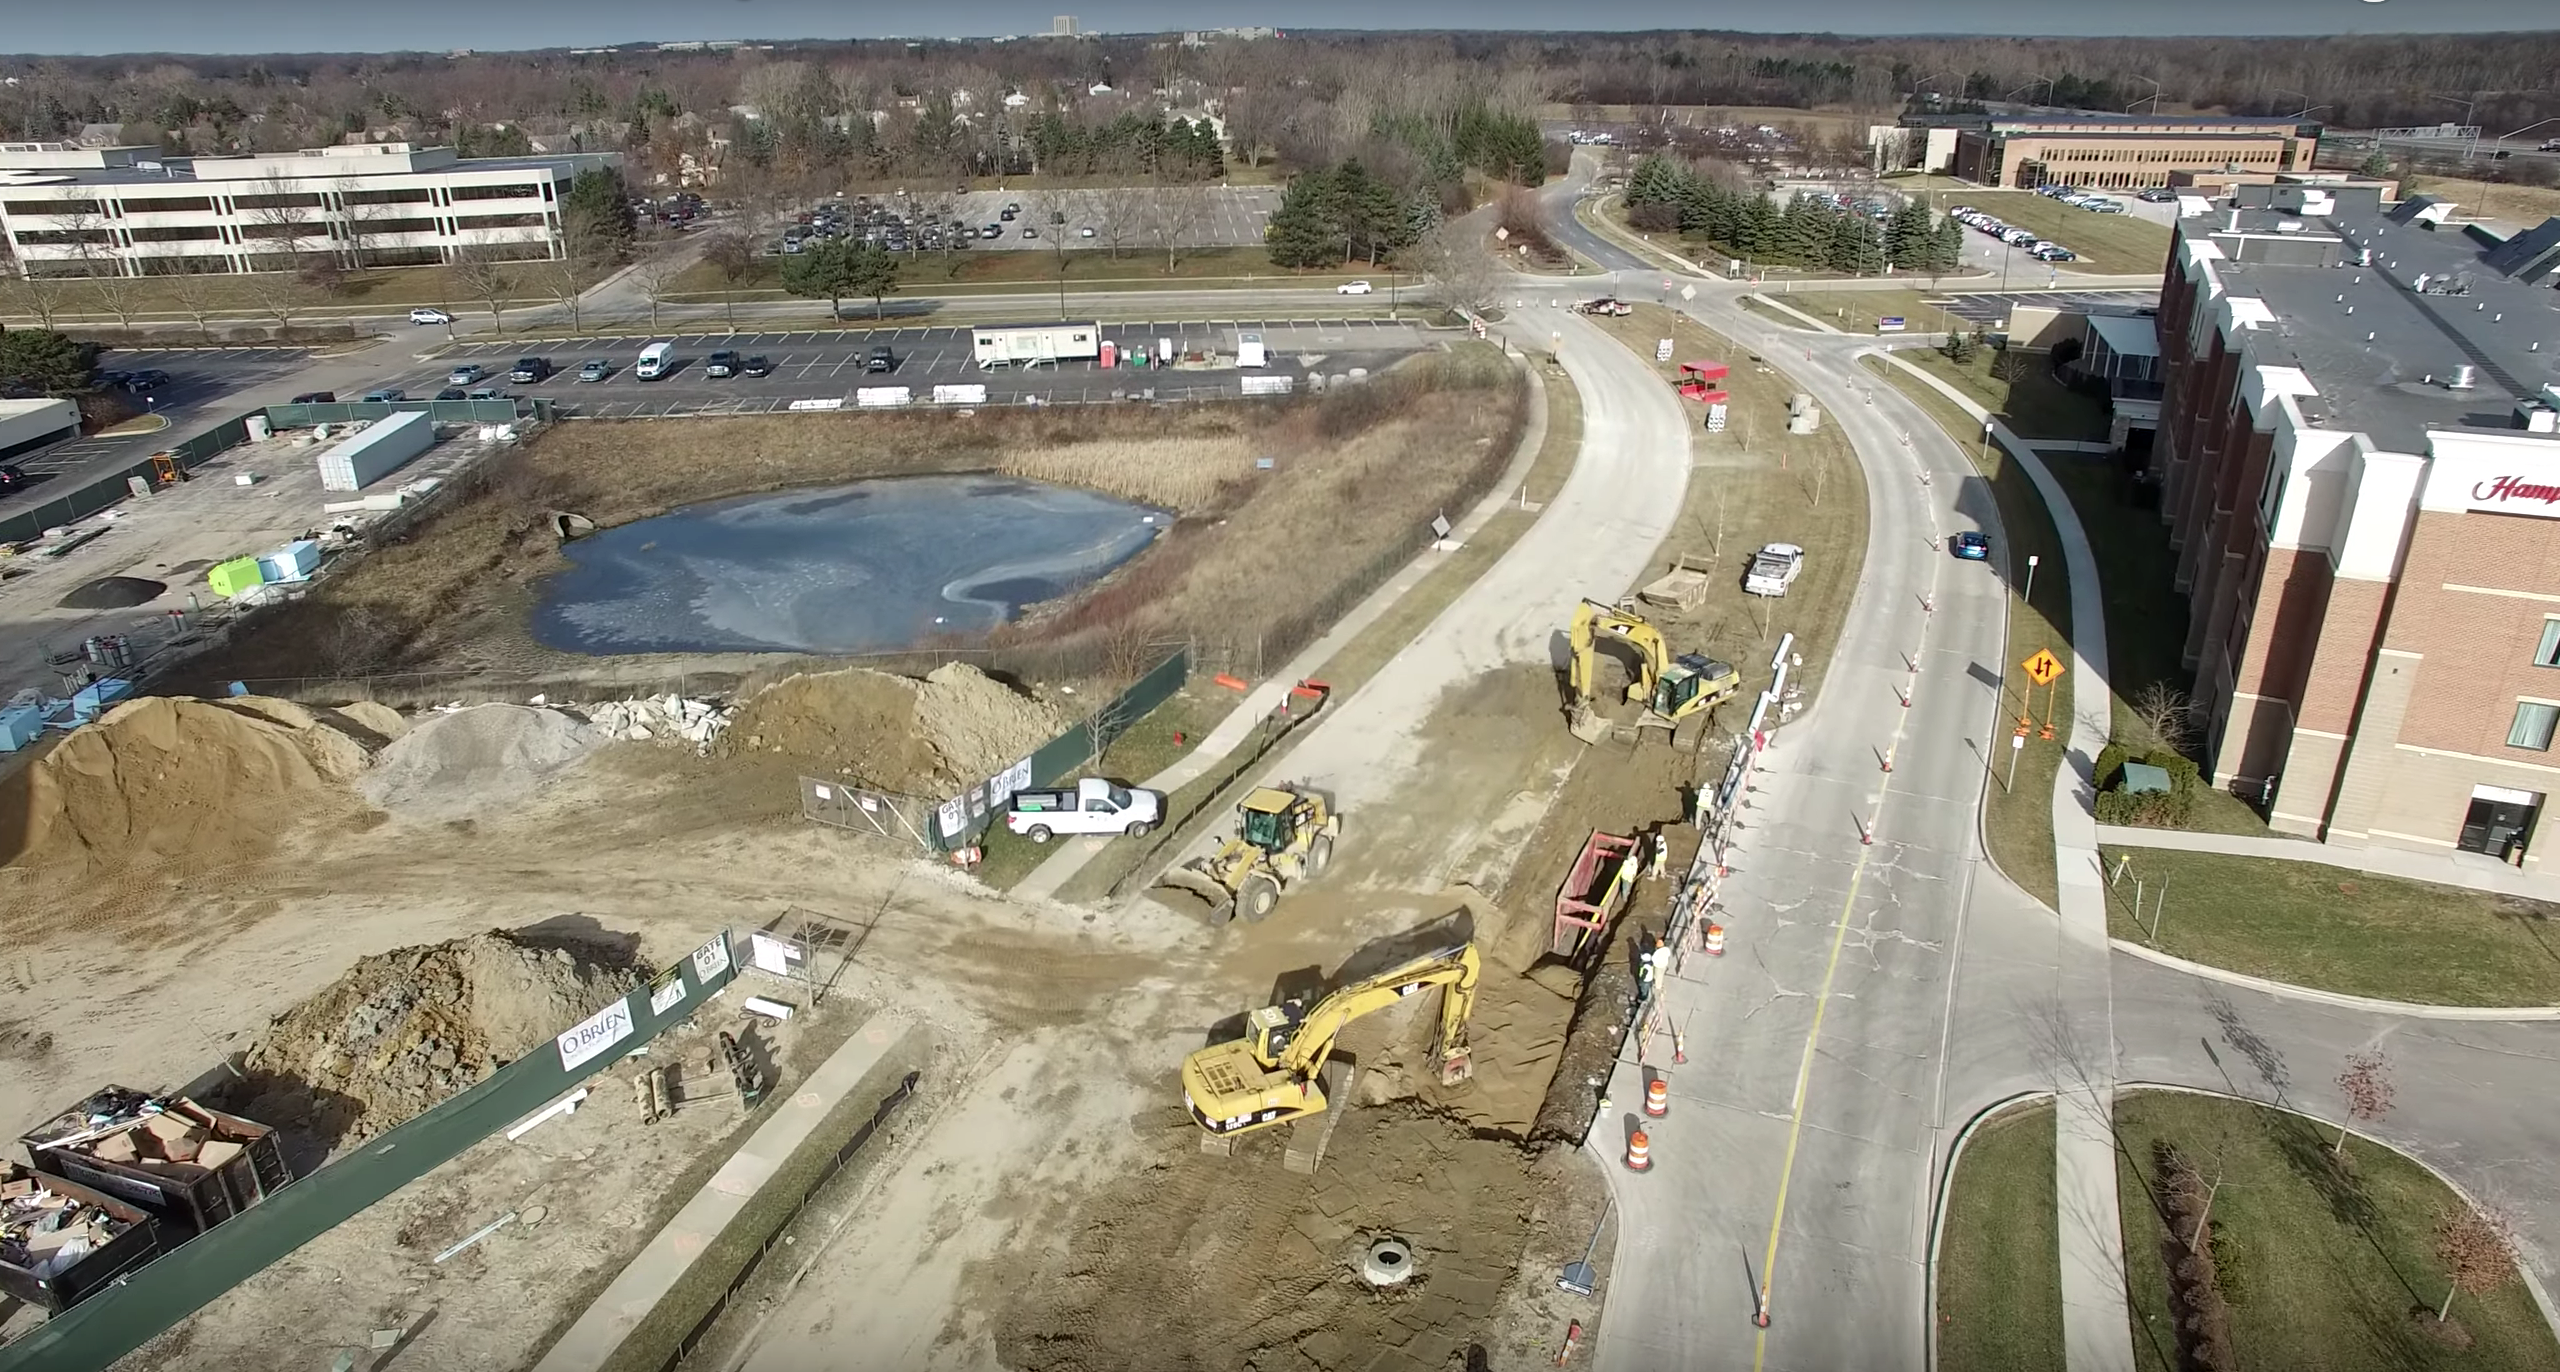 A drone captures the Site Development Industry's job site for 888 Big Beaver